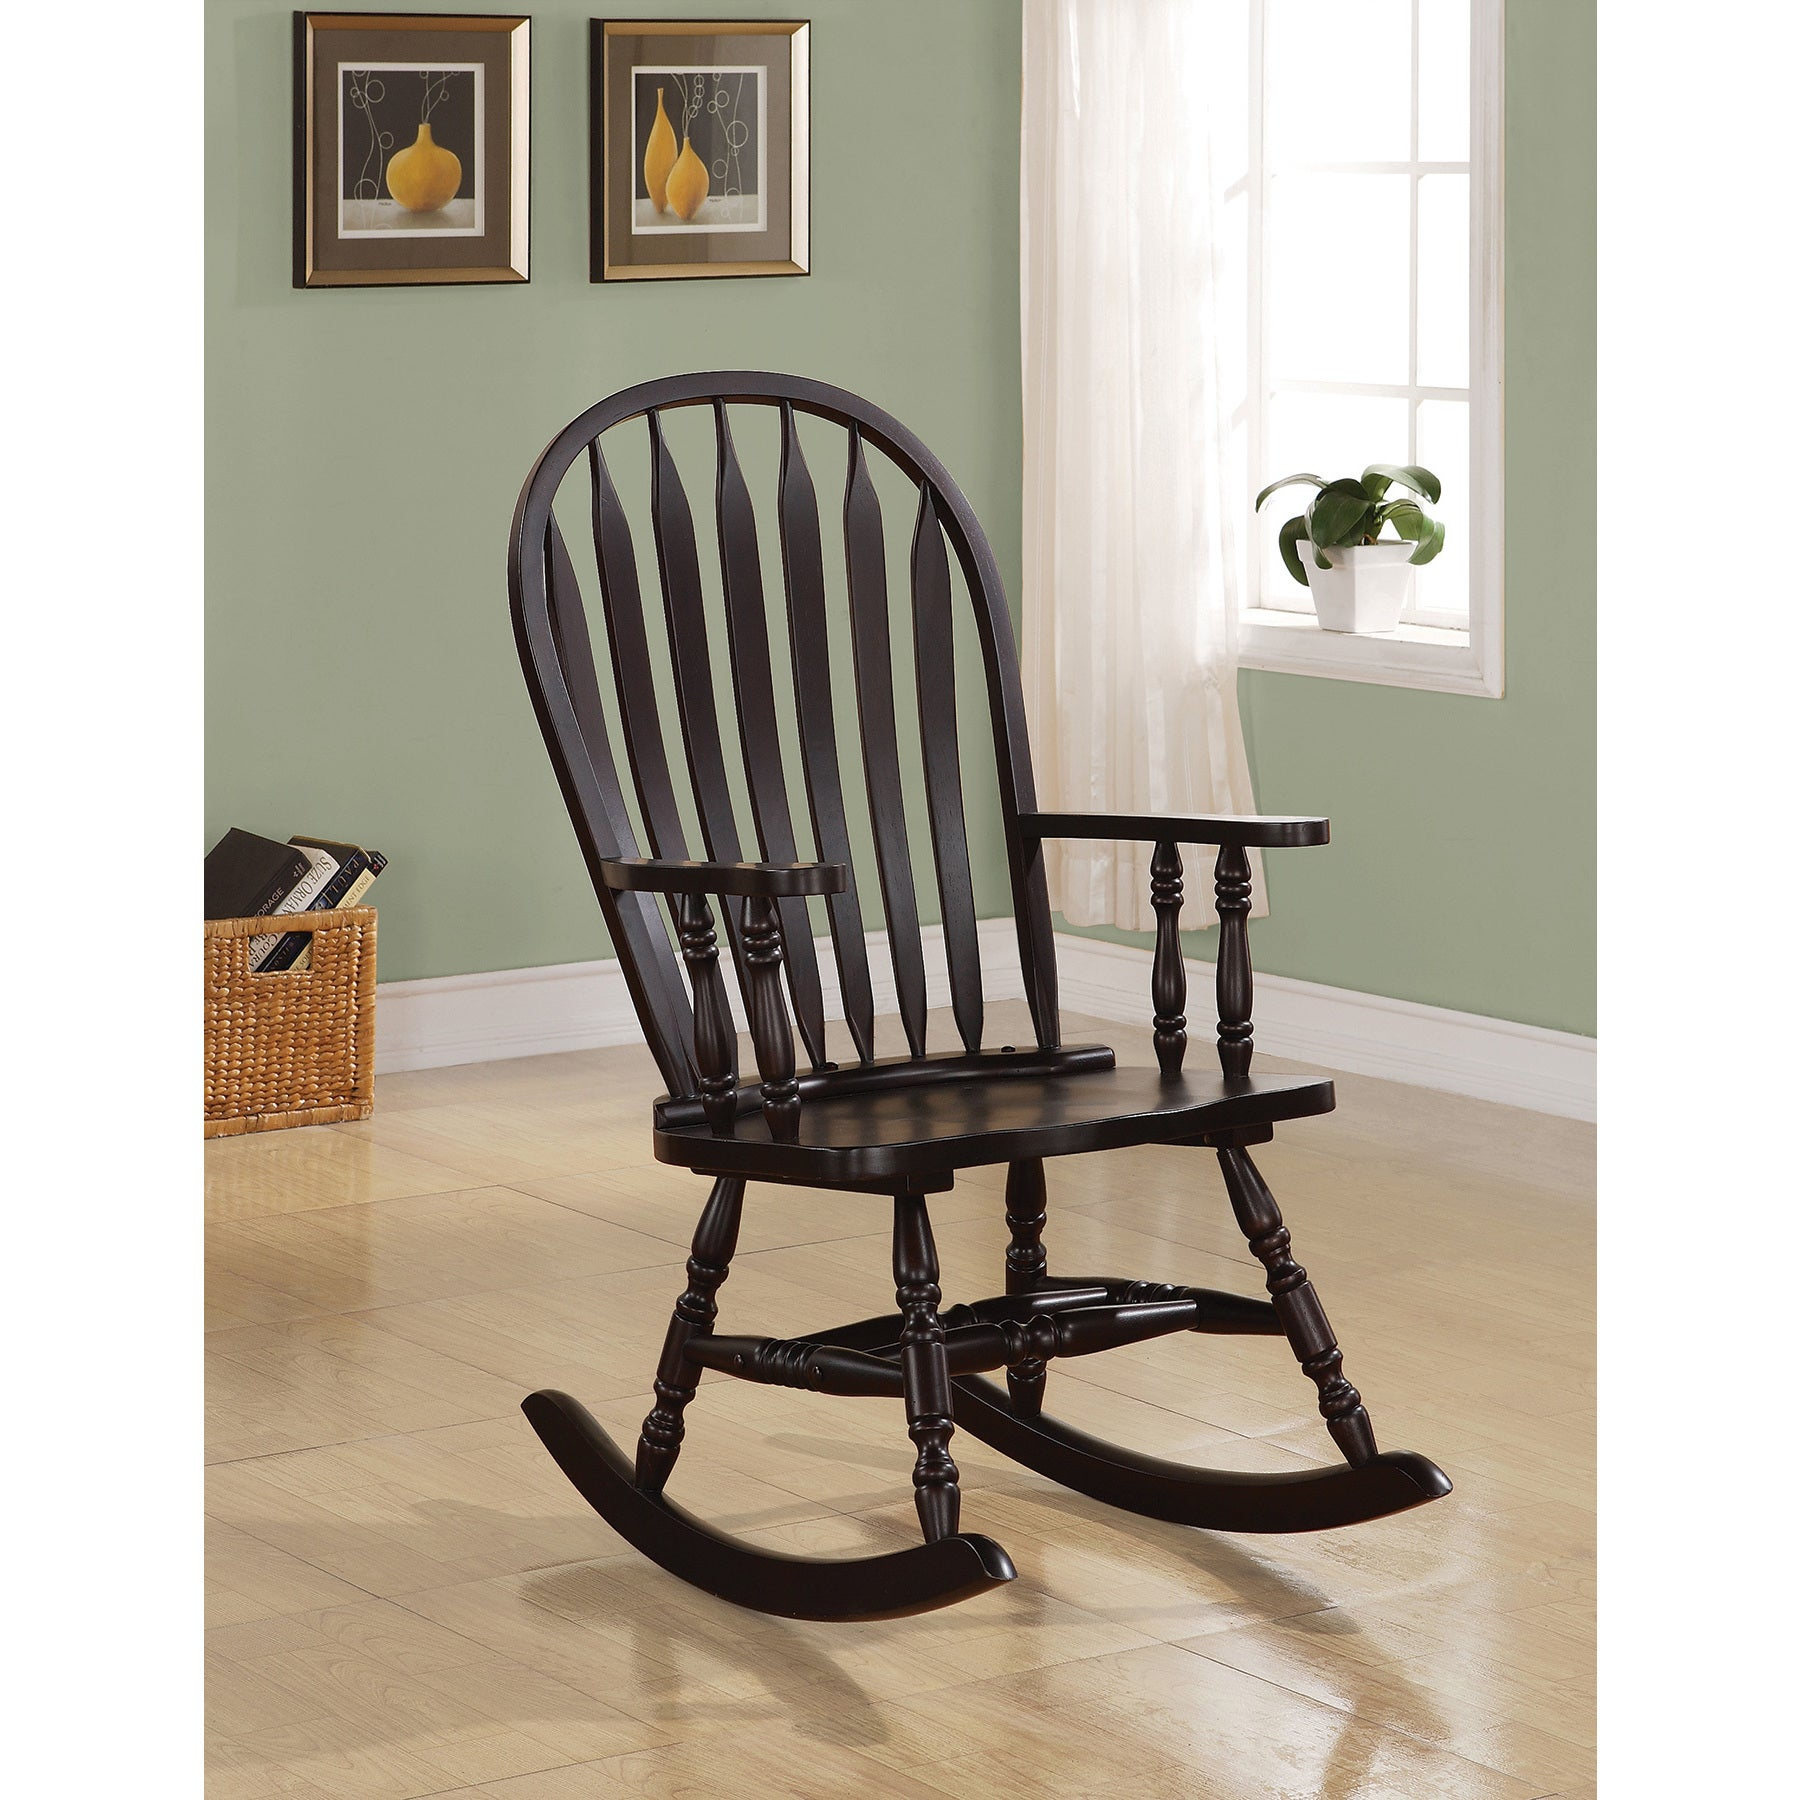 Popular Photo of Cappuccino Curved Rocking Chairs